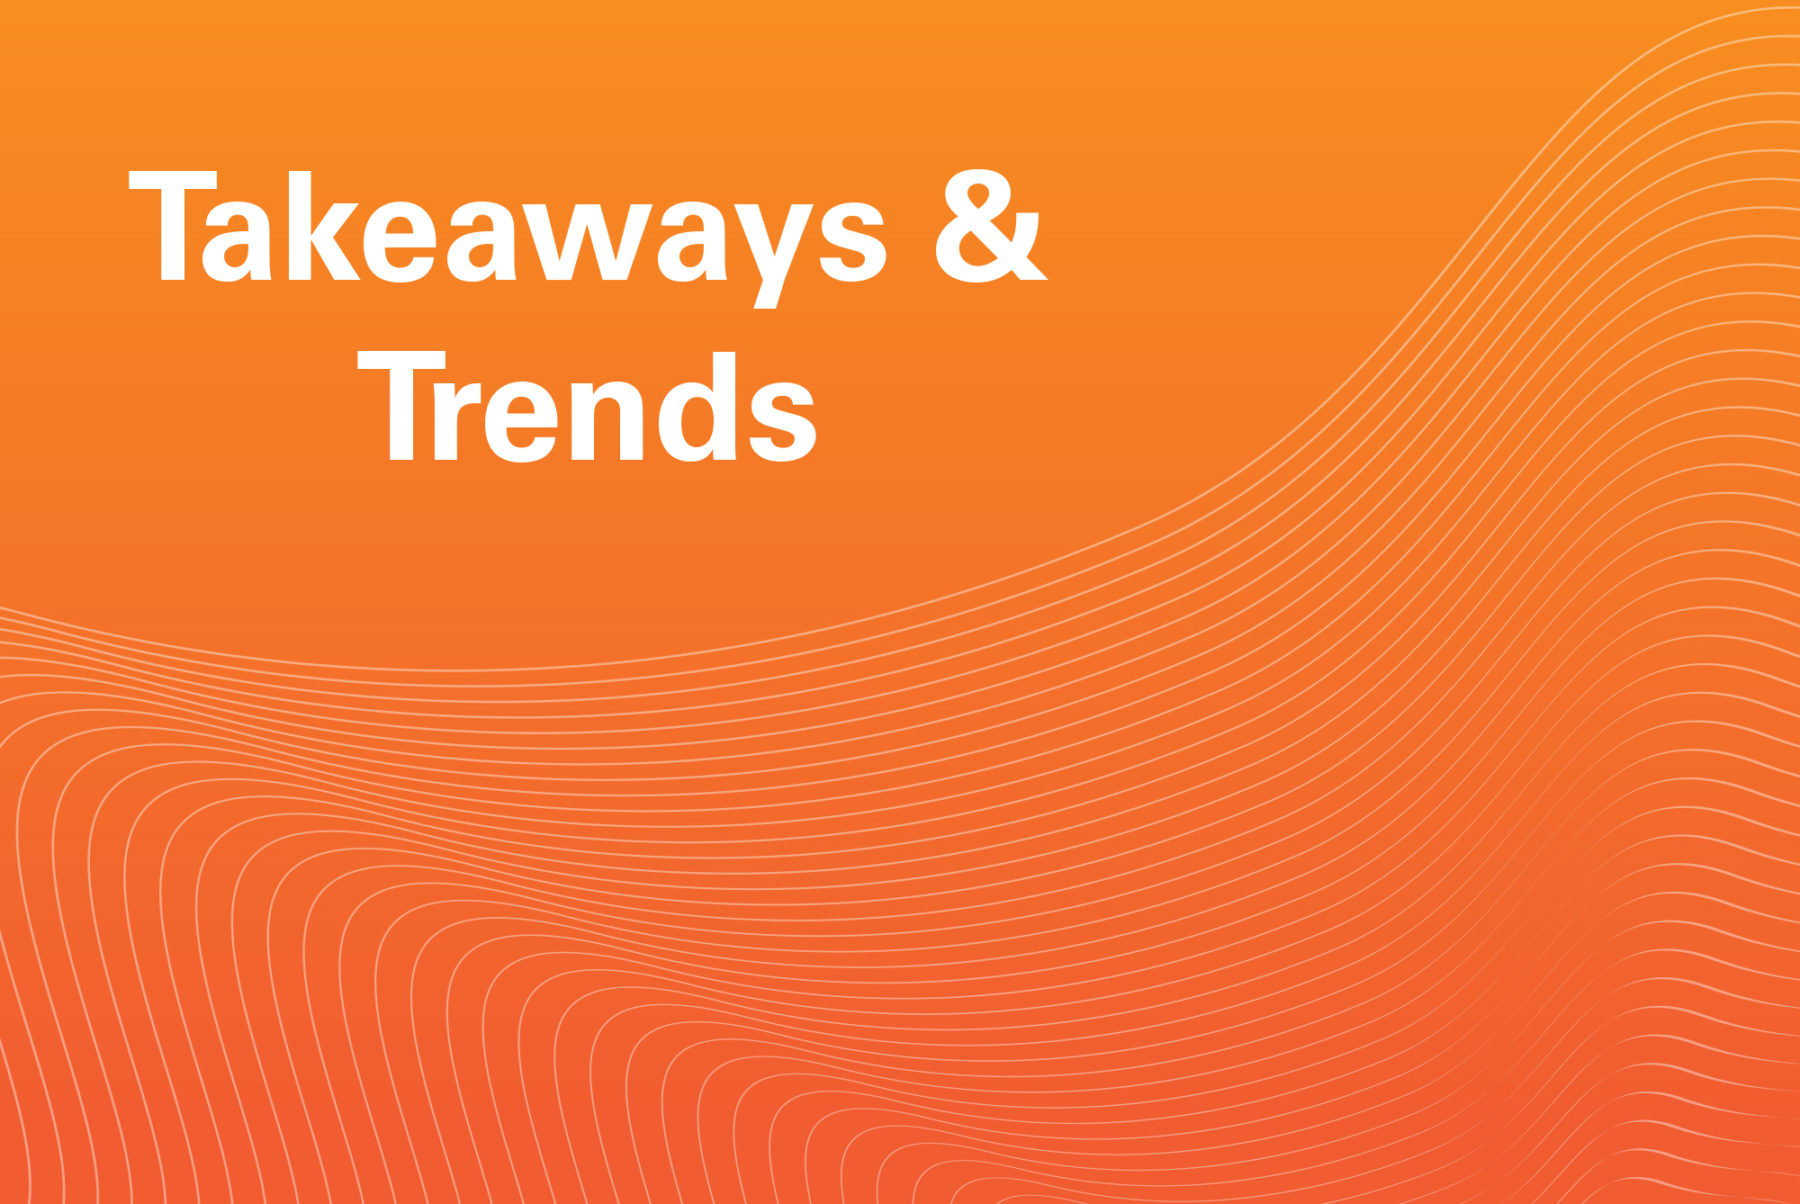 Takeaways and Trends